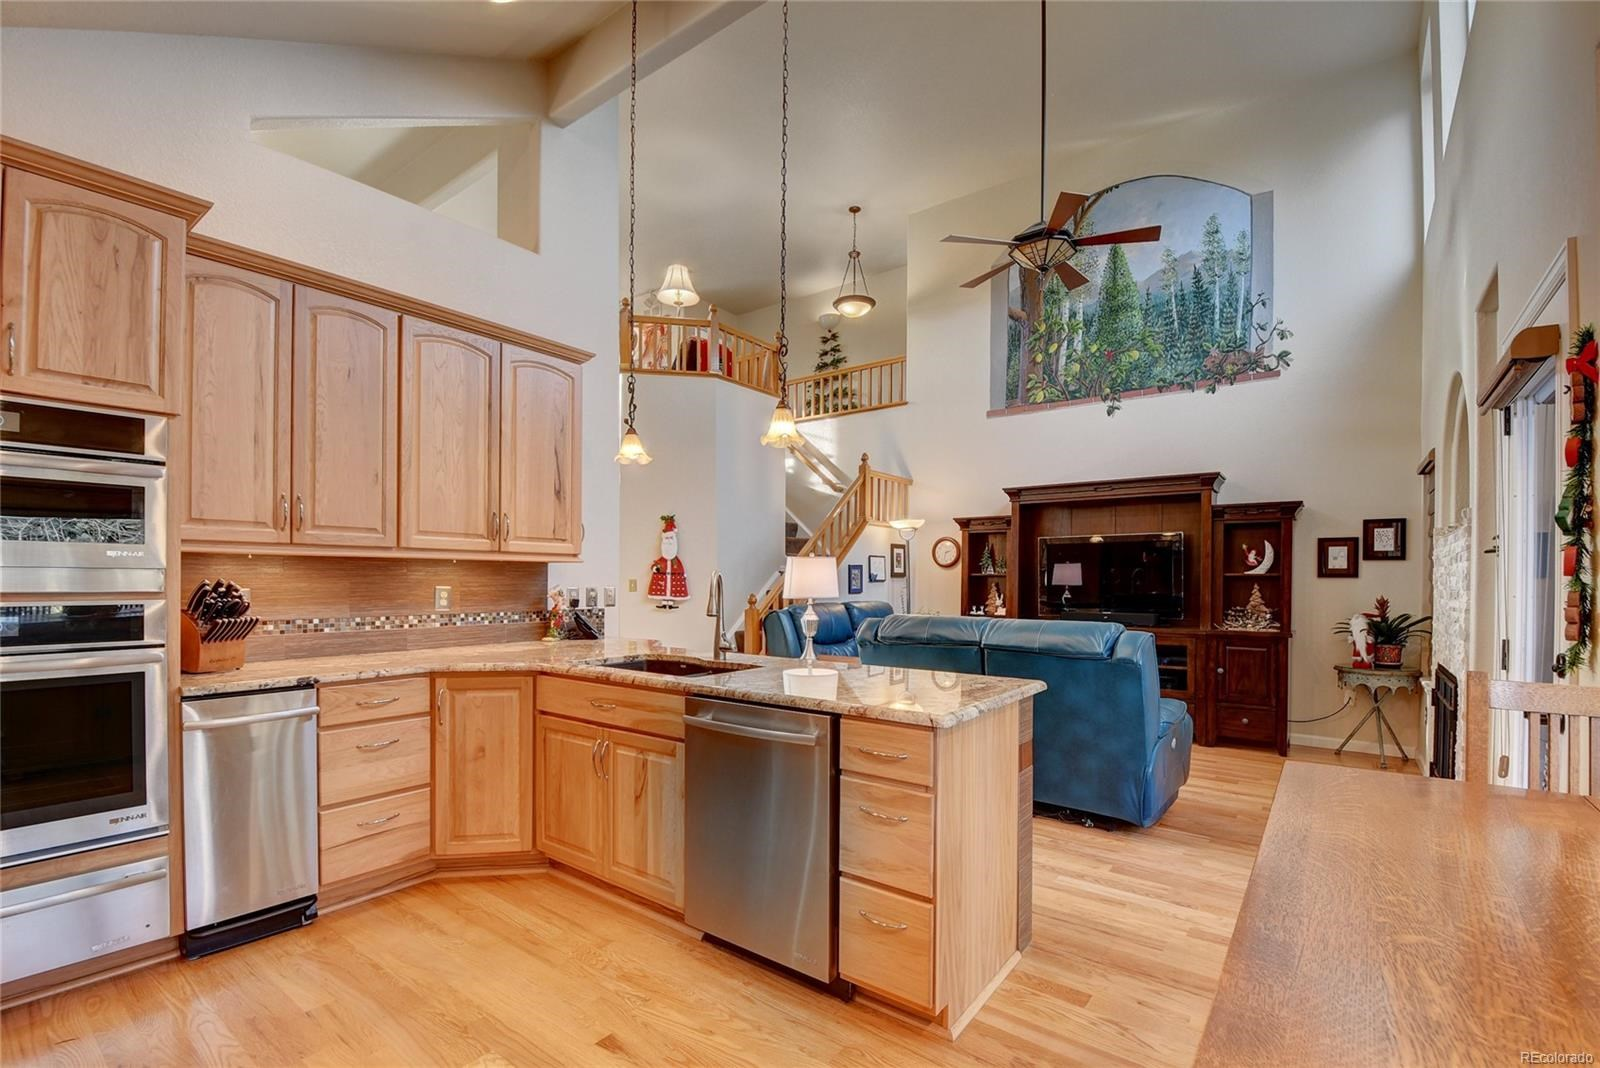 MLS# 9913436 - 12 - 5726 W 81st Place, Arvada, CO 80003